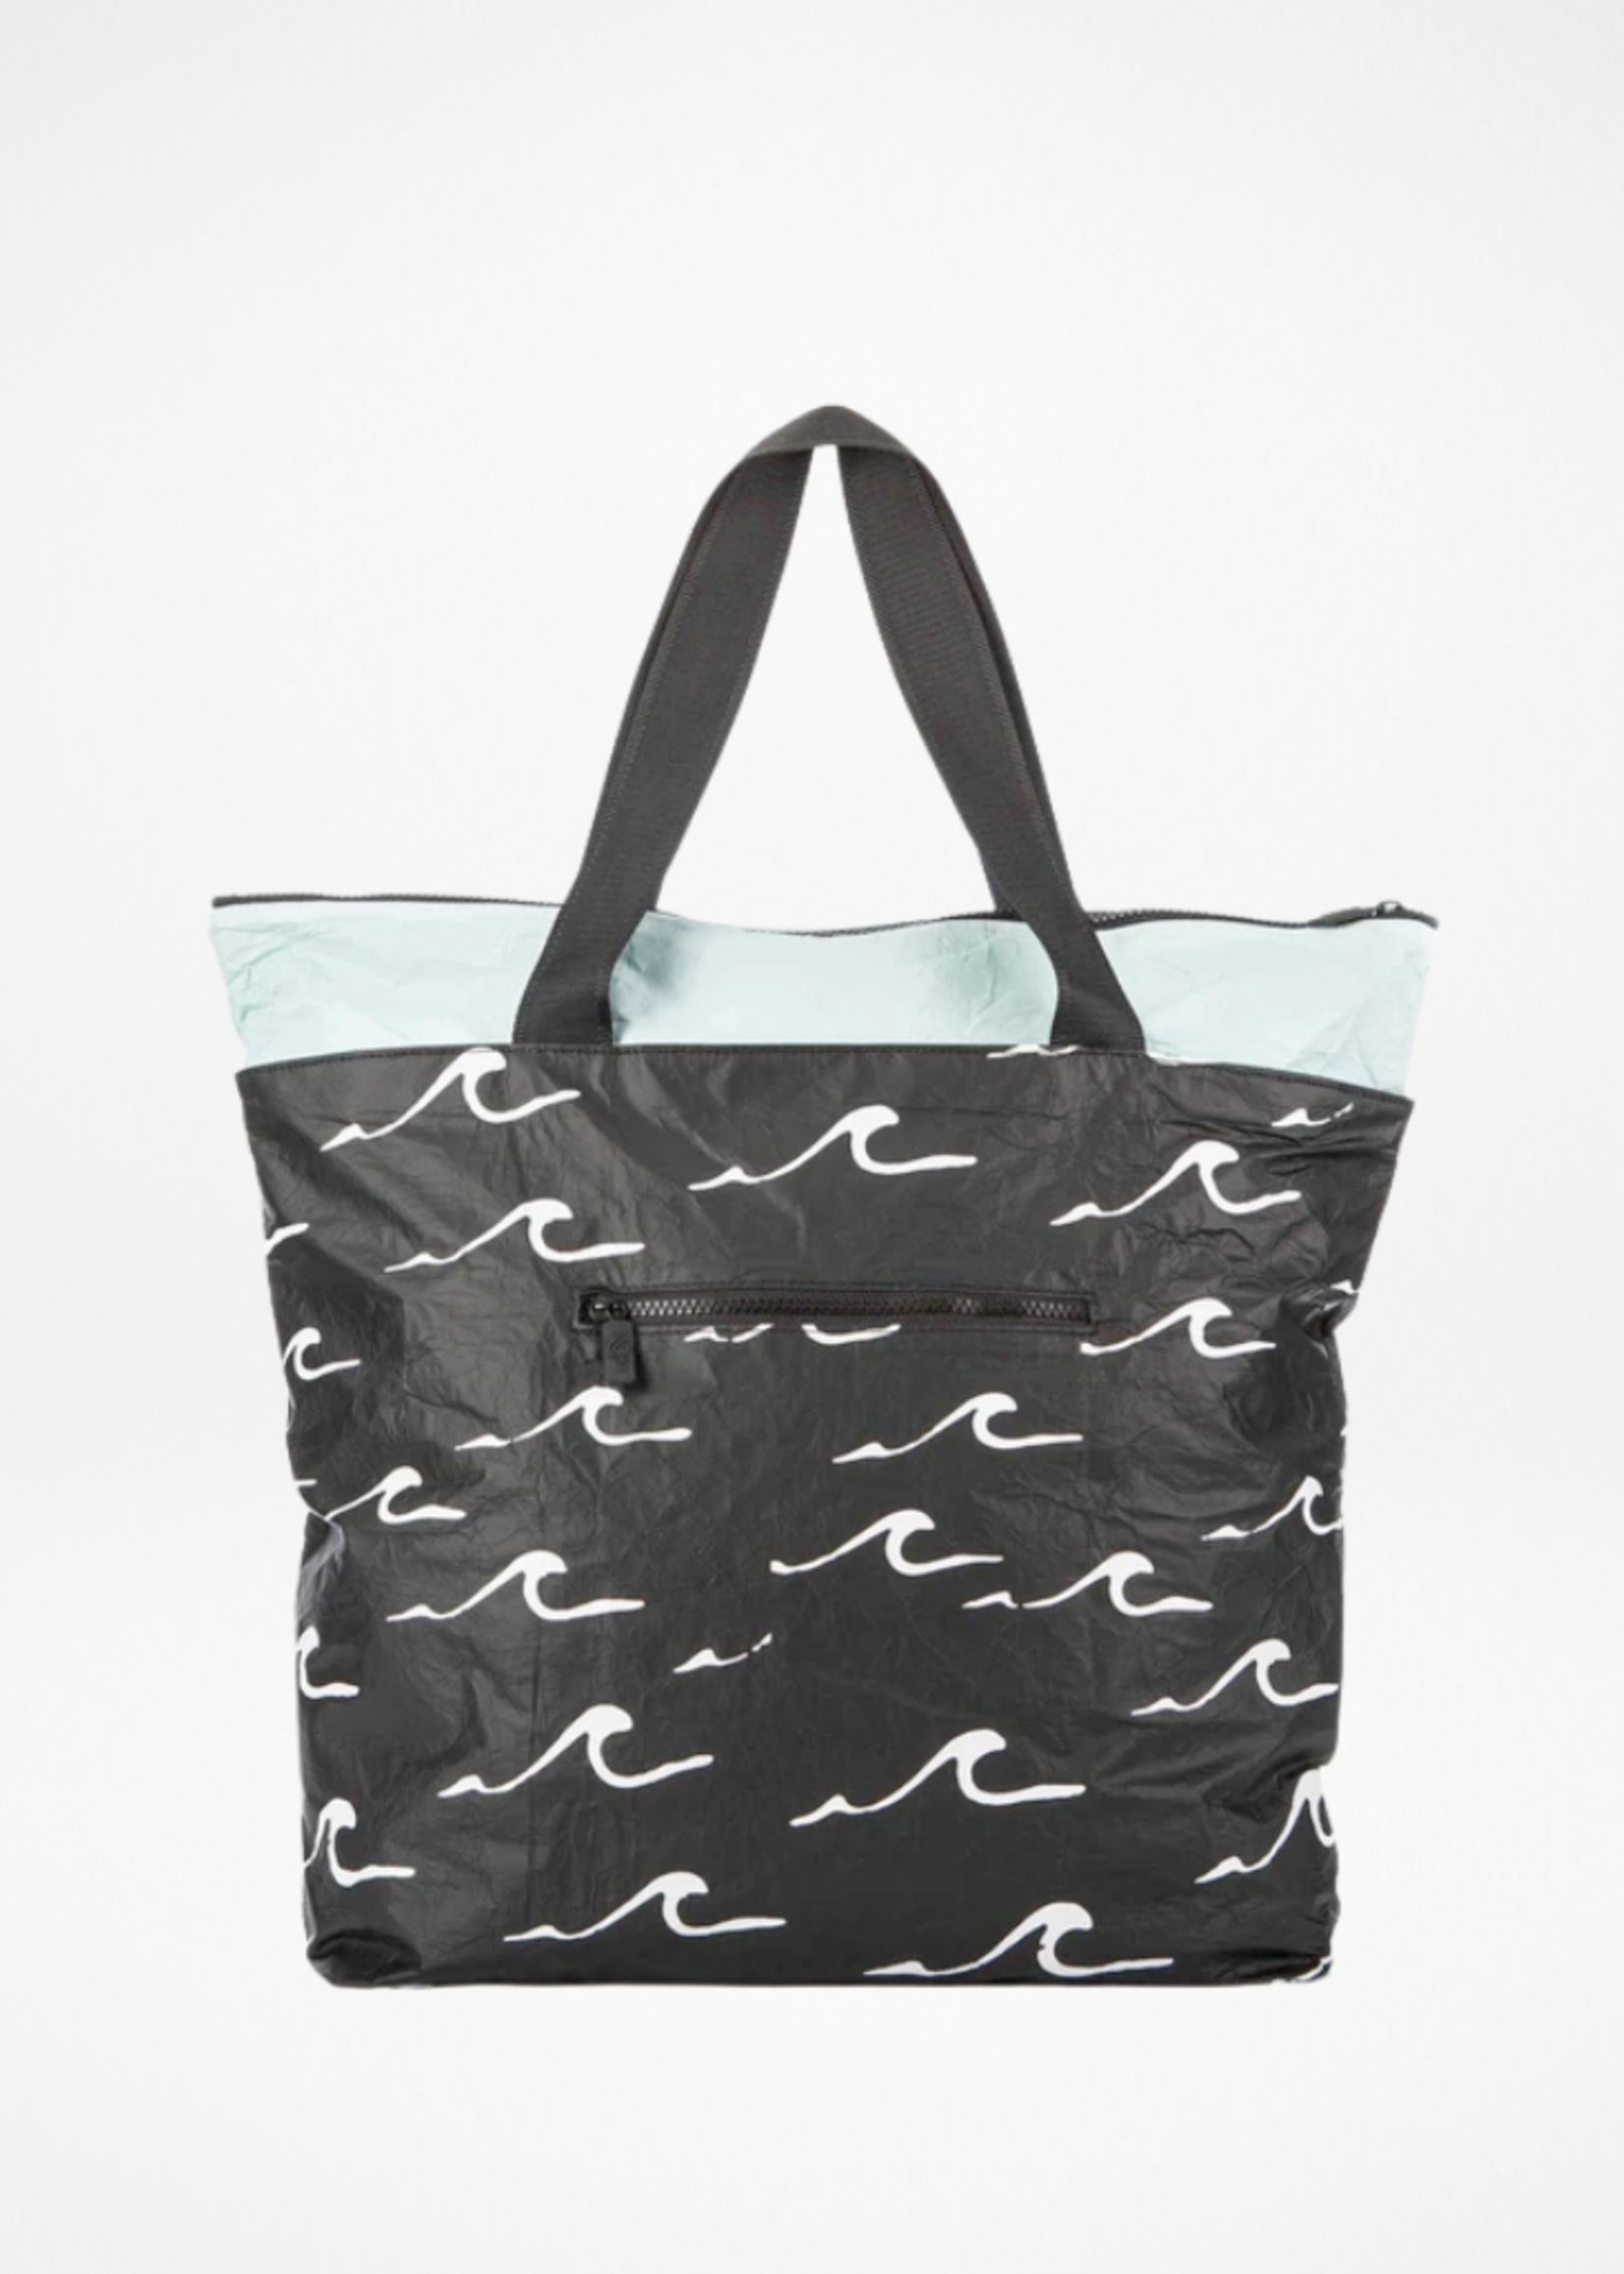 21 ALOHA COLLECTION DAY TRIPPER BAG